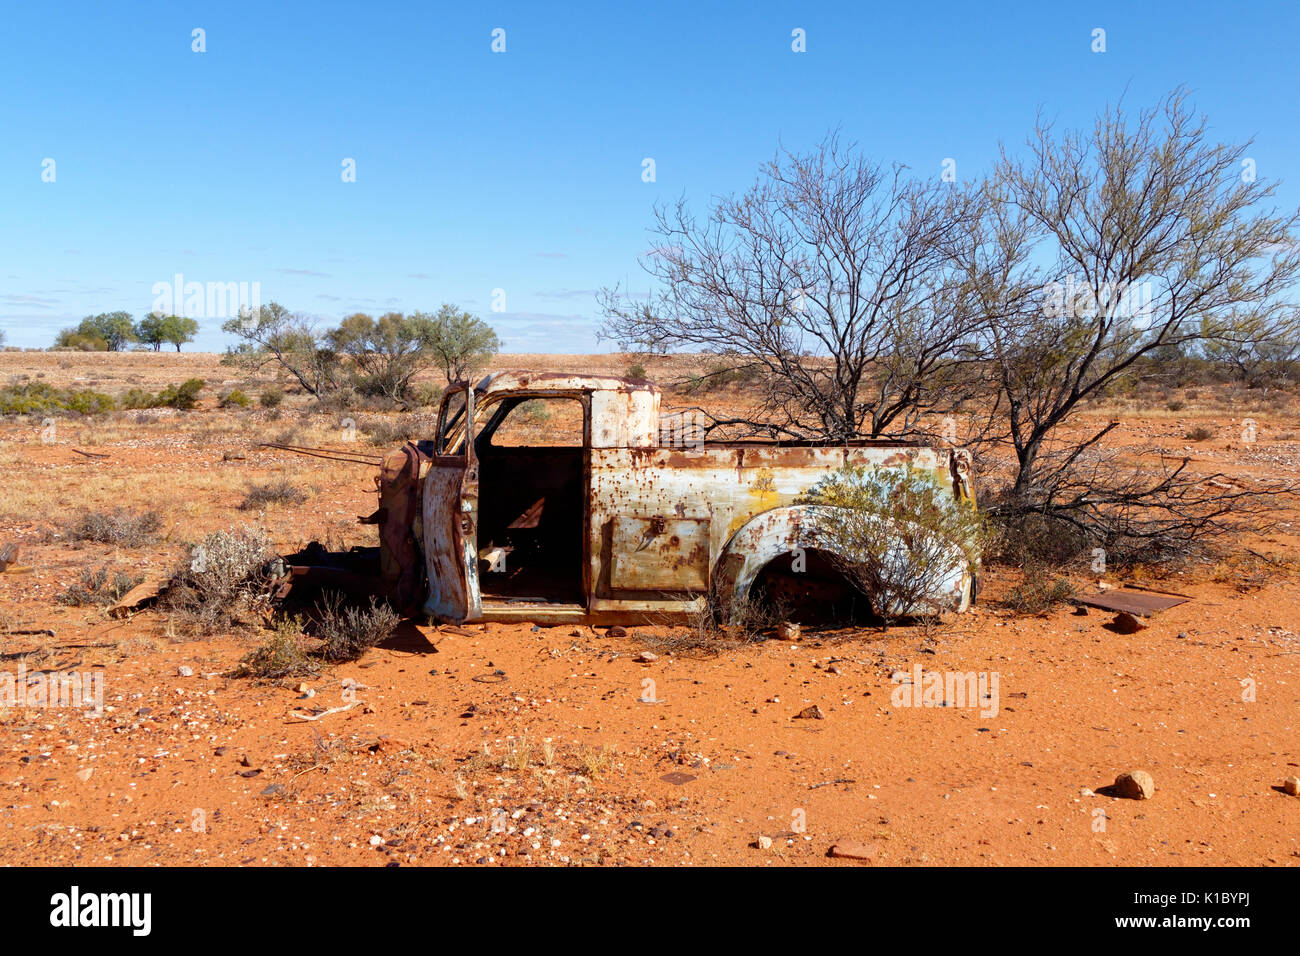 Old car from the former Nannine gold mining town, Meekathara, Murchison, Western Australia - Stock Image